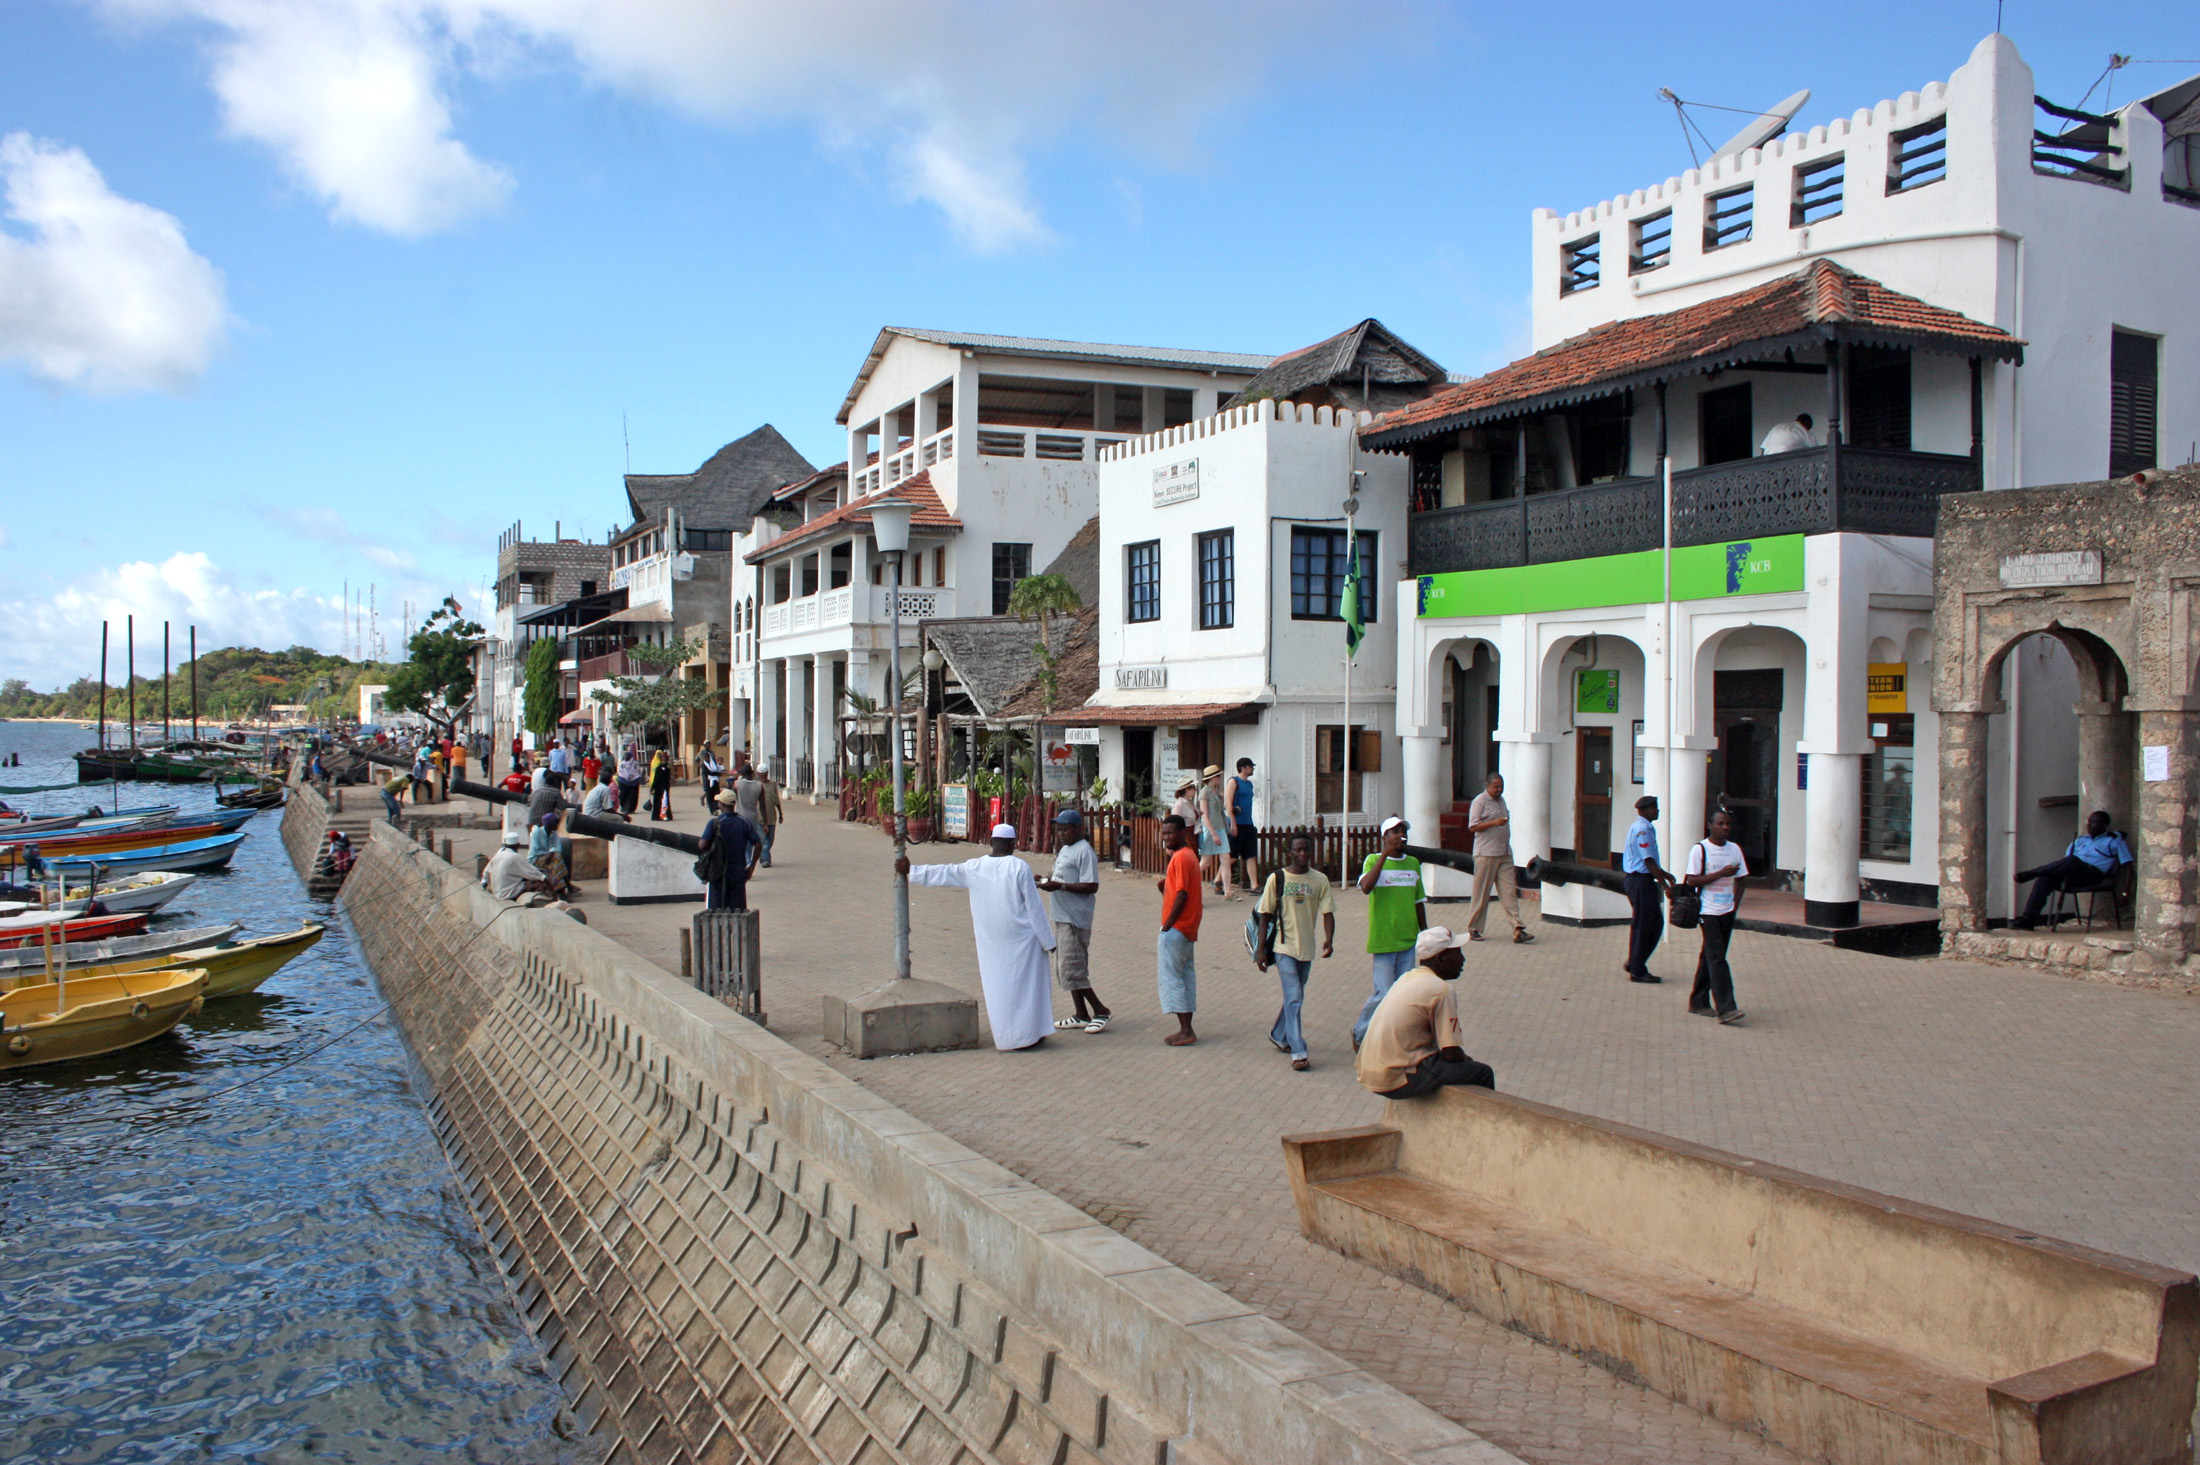 Lamu Island. The government says a proposed new port will create thousands of jobs and open up the region for development